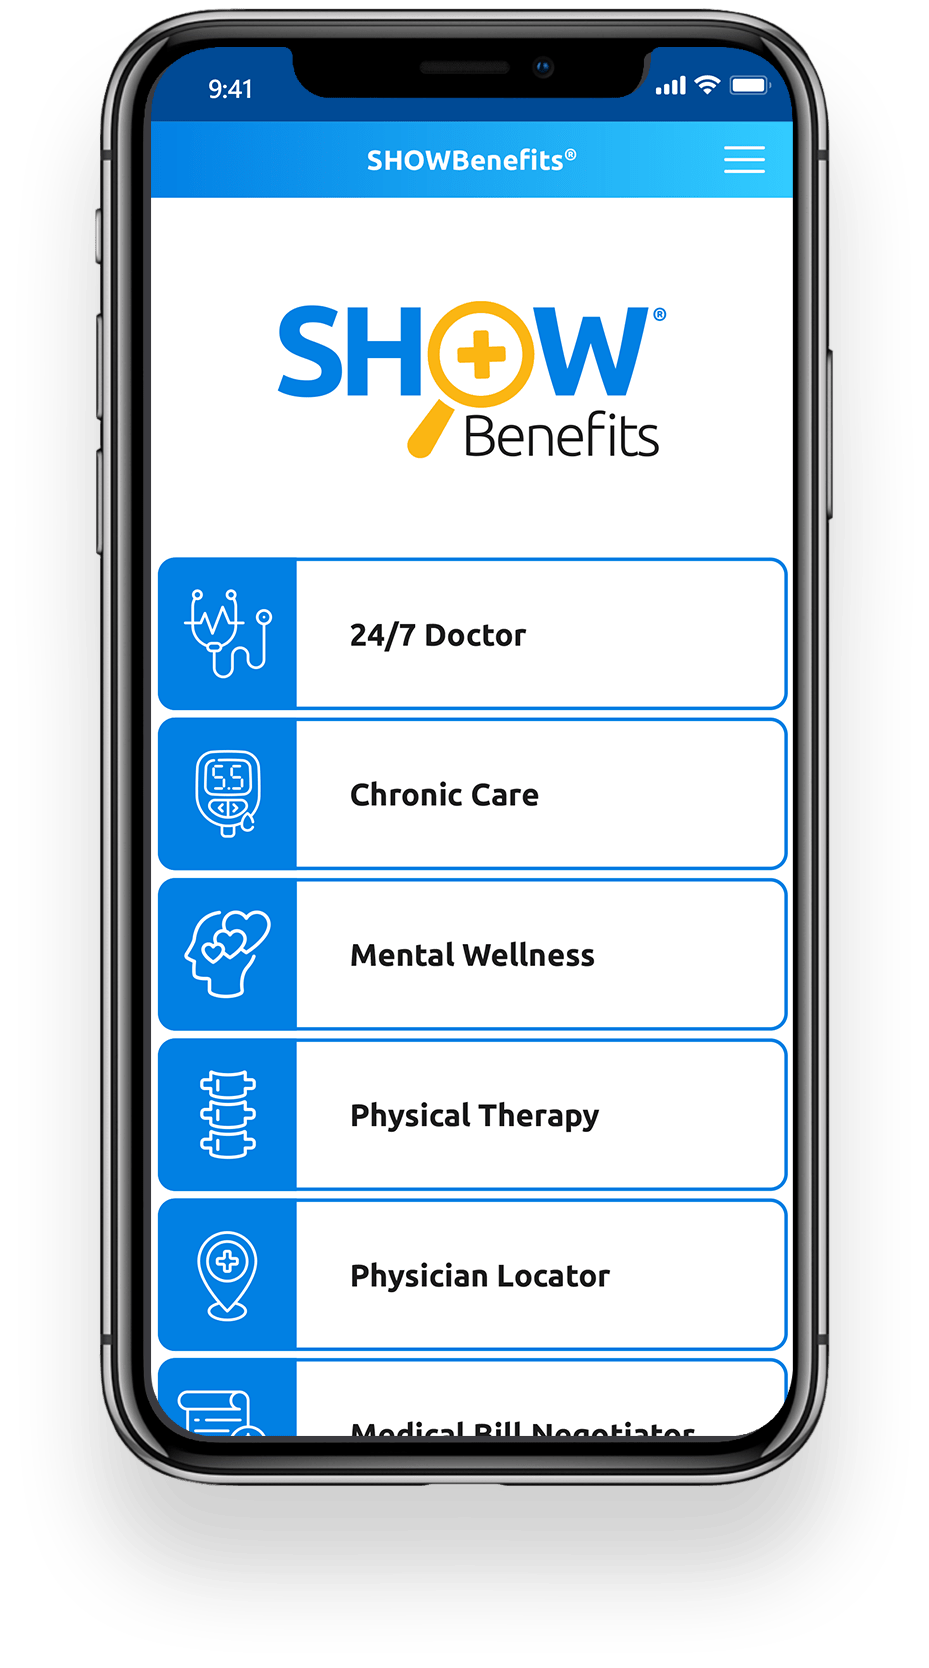 SHOWBenefits Phone Application Home Screen